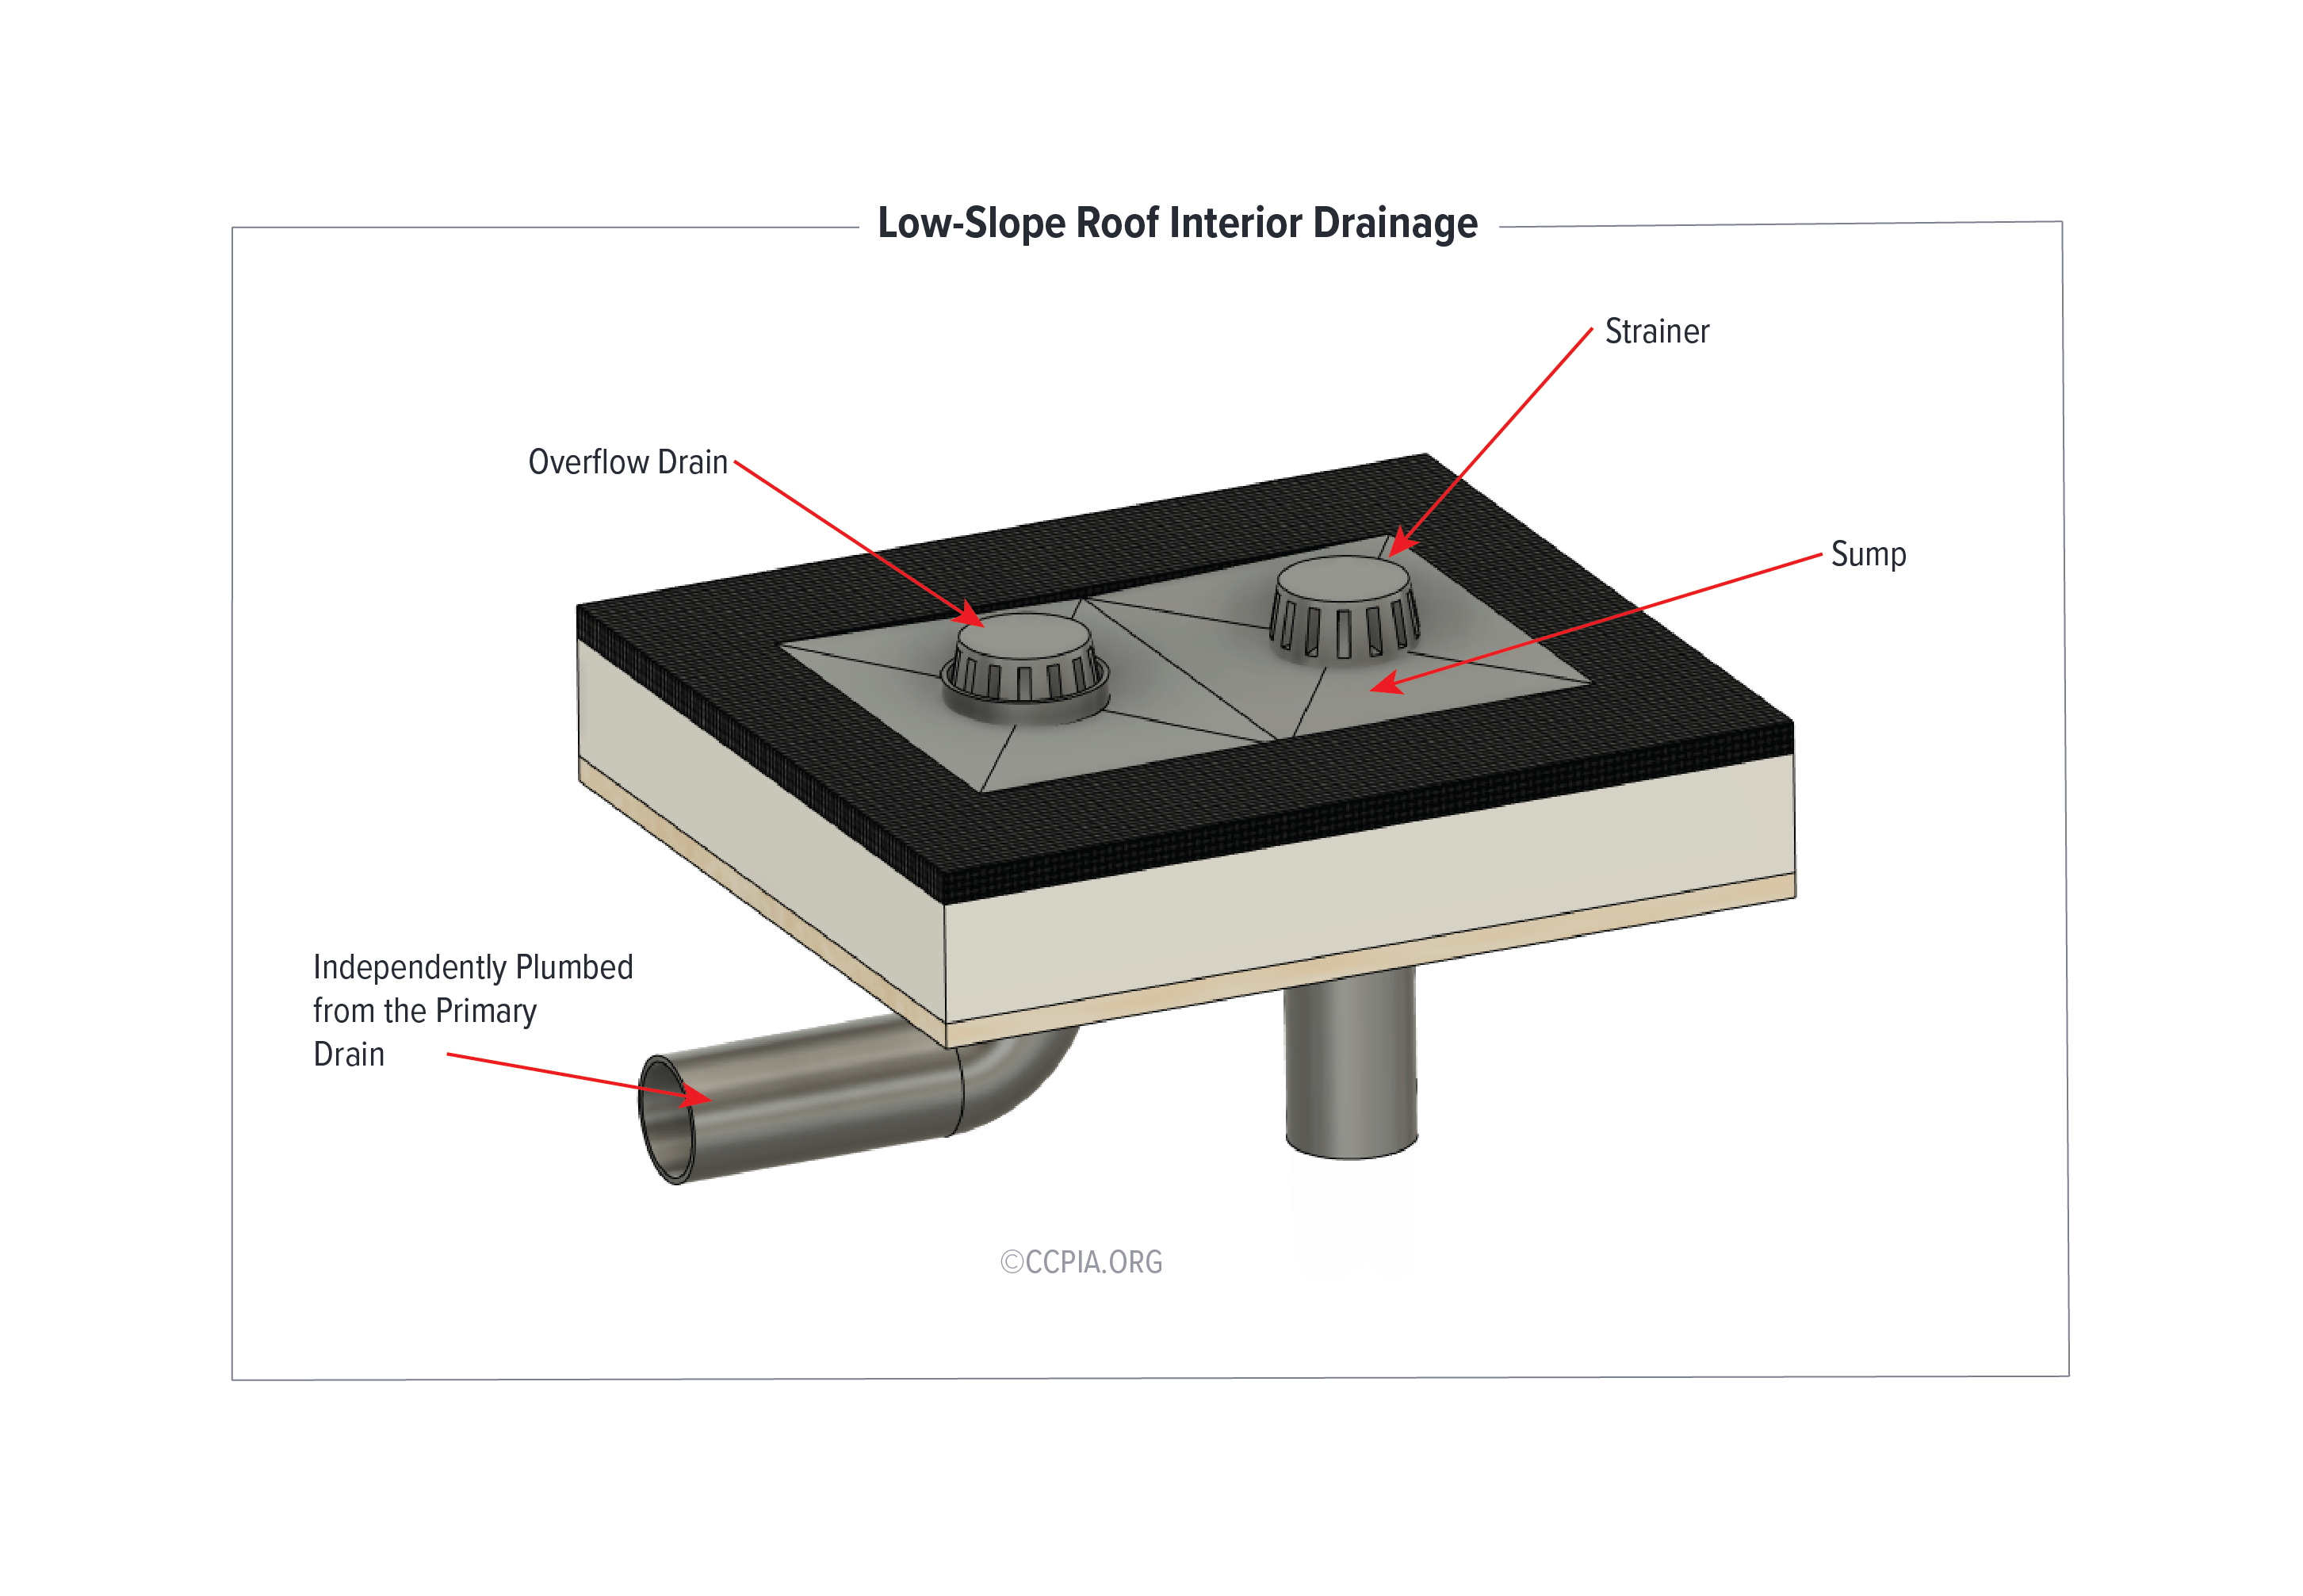 Low-Slope Roof Interior Drainage: Interior Drain and Overflow Drain in Sump